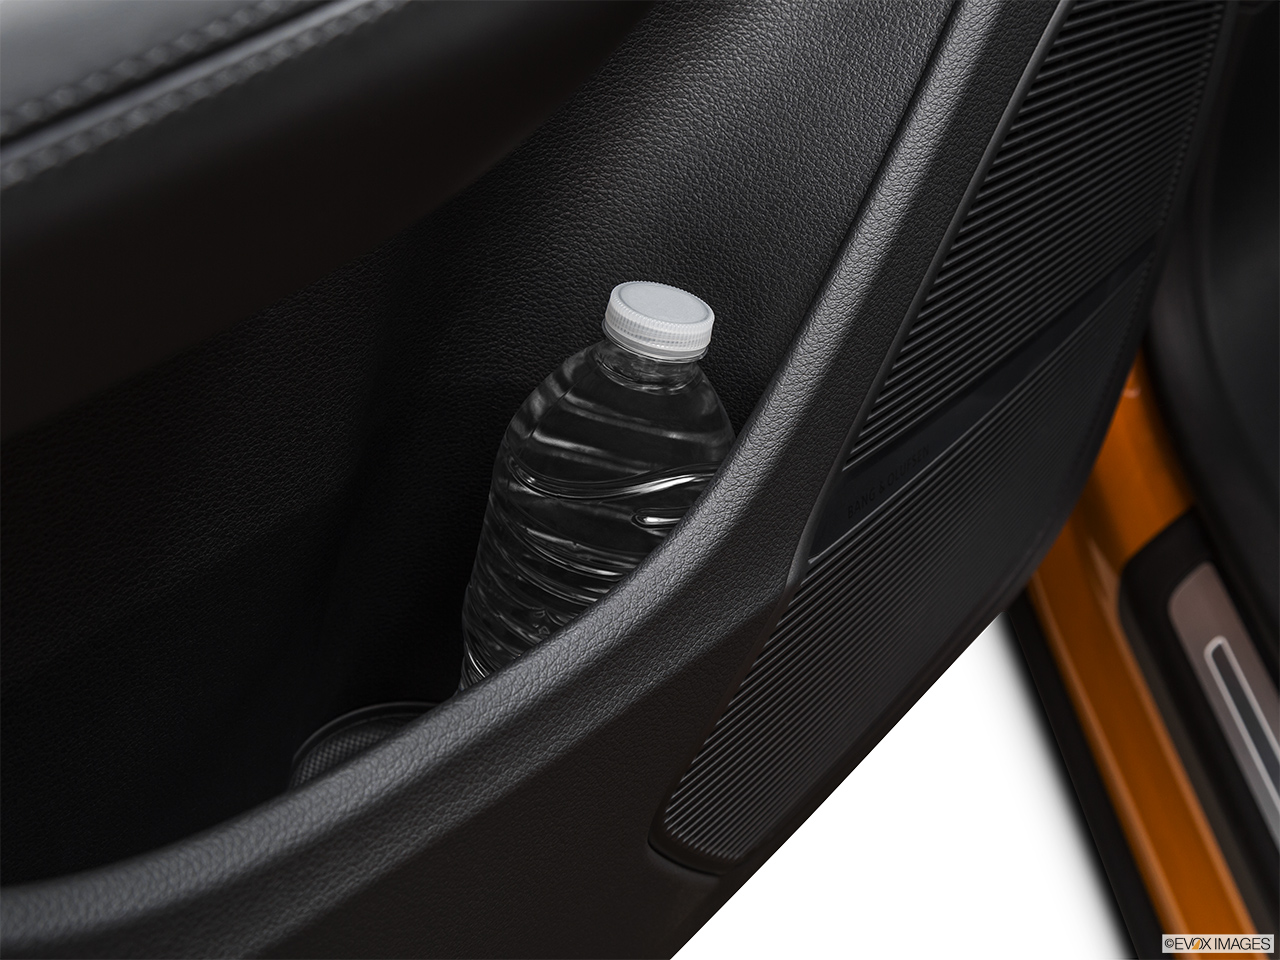 2019 Audi Q8 Prestige 3.0 TFSI Second row side cup holder with coffee prop, or second row door cup holder with water bottle.